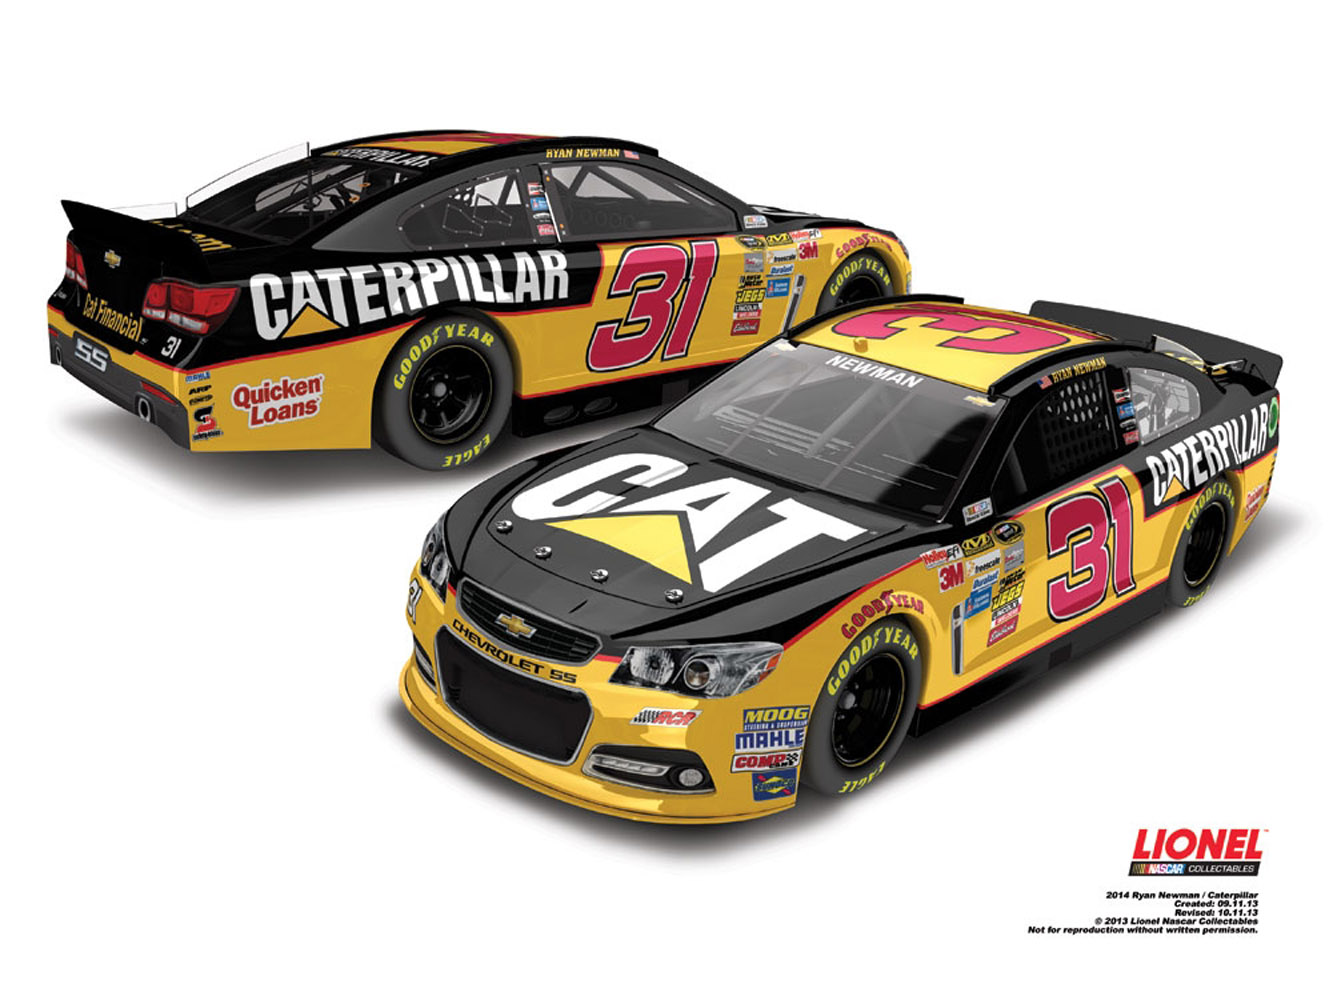 2014 Ryan Newman #31 Caterpillar 1:24 Diecast Car